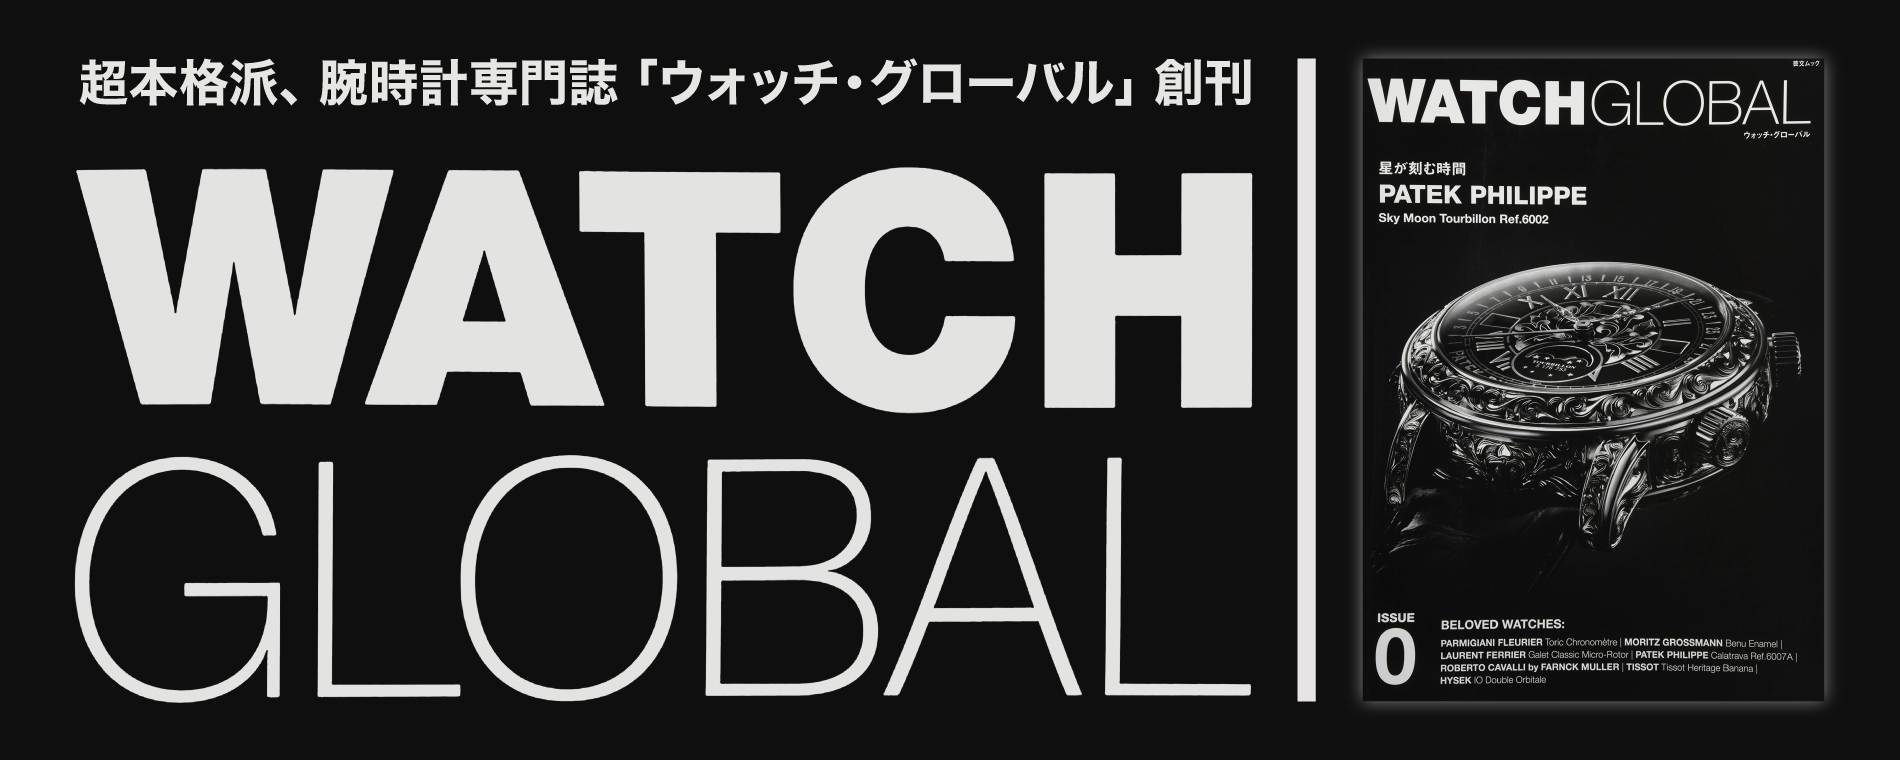 watchglobal